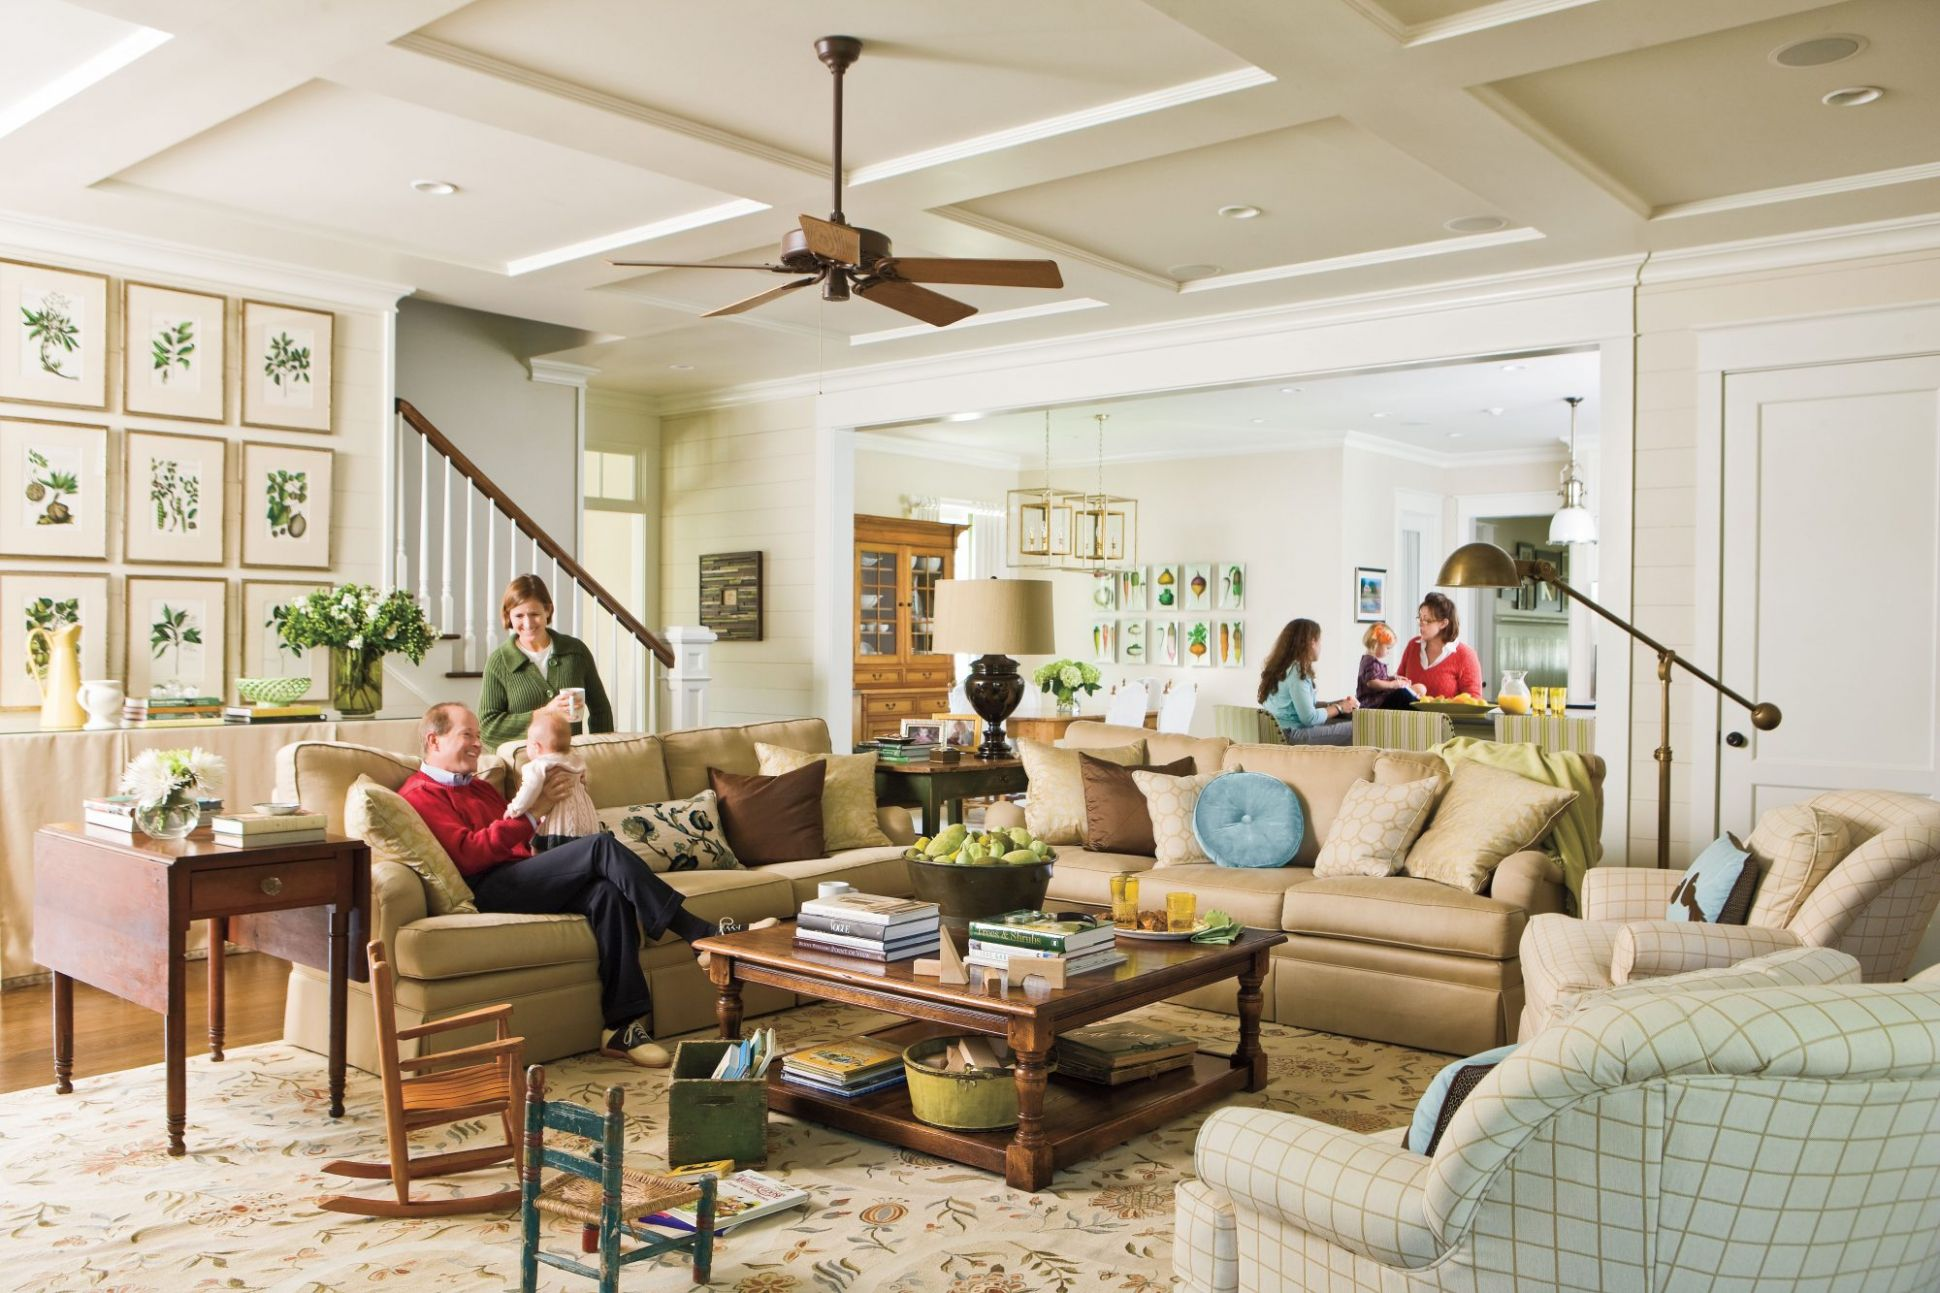 10 Living Room Decorating Ideas | Southern Living - living room ideas young family